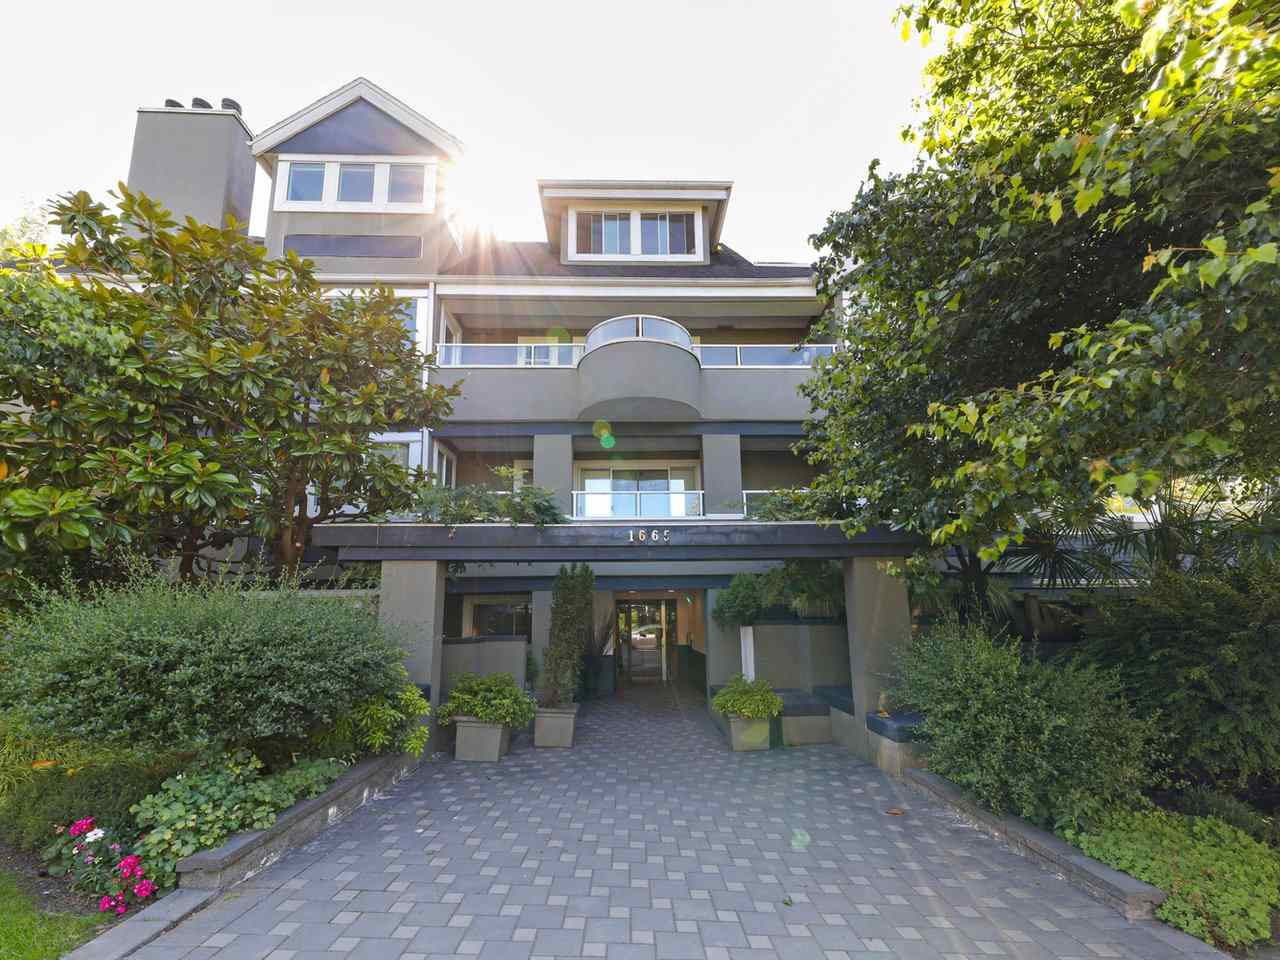 204 1665 ARBUTUS STREET - Kitsilano Apartment/Condo for sale, 1 Bedroom (R2479982)